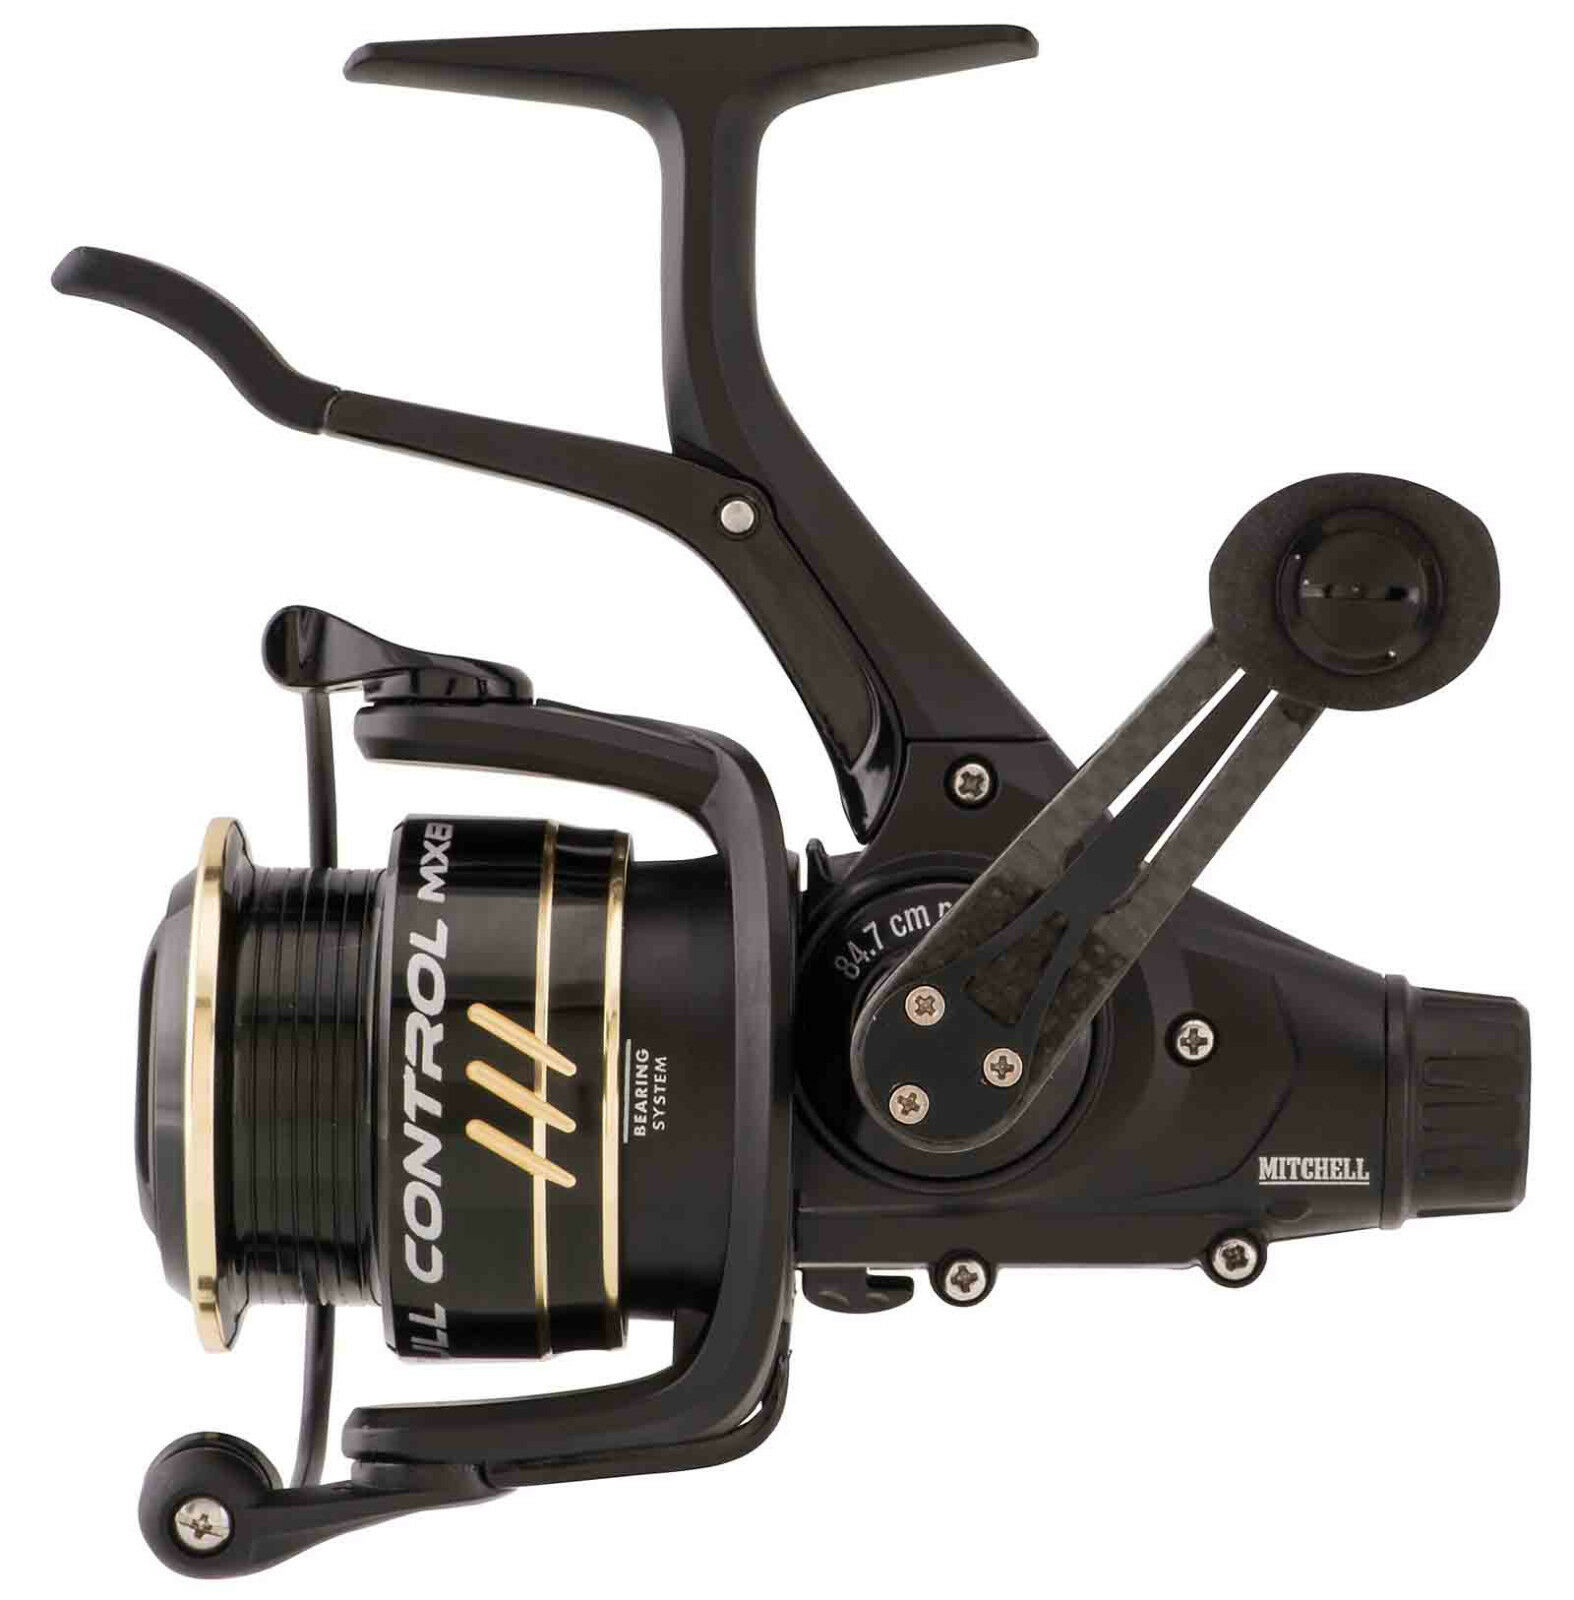 Mitchell Full Control MX8 4000 Fixed Spool Coarse Fishing Reel + Spare Spool